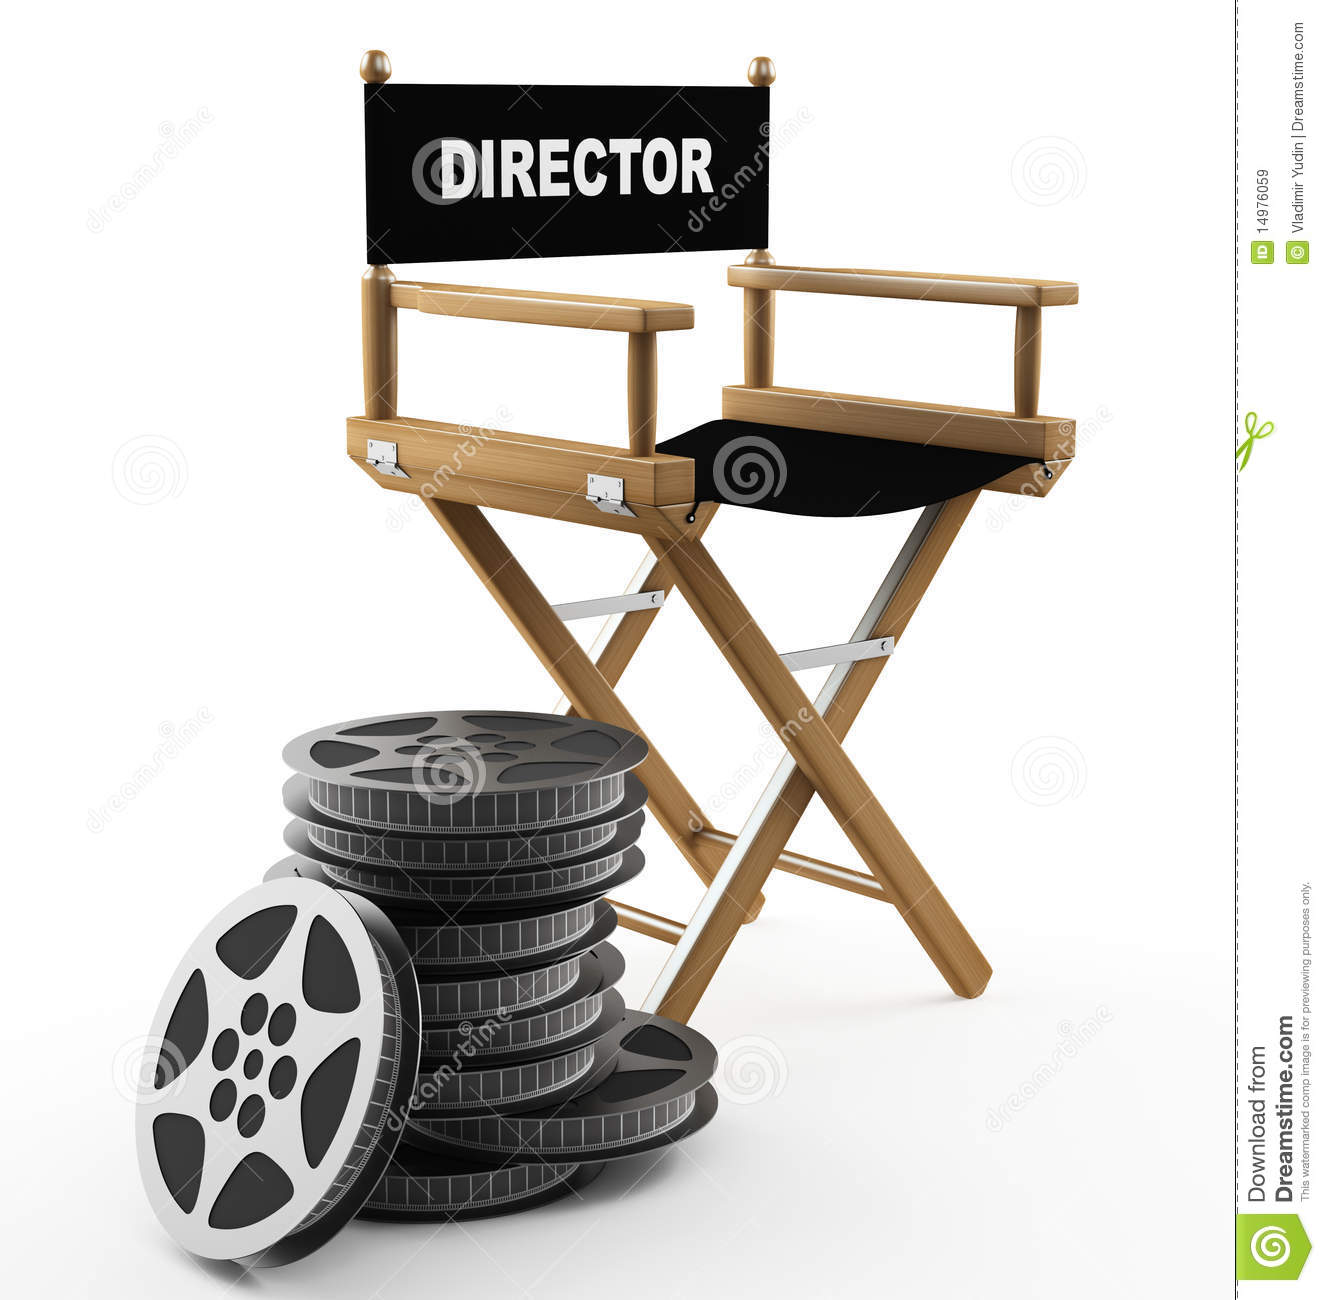 Director Chair Clipart - Clipart Suggest